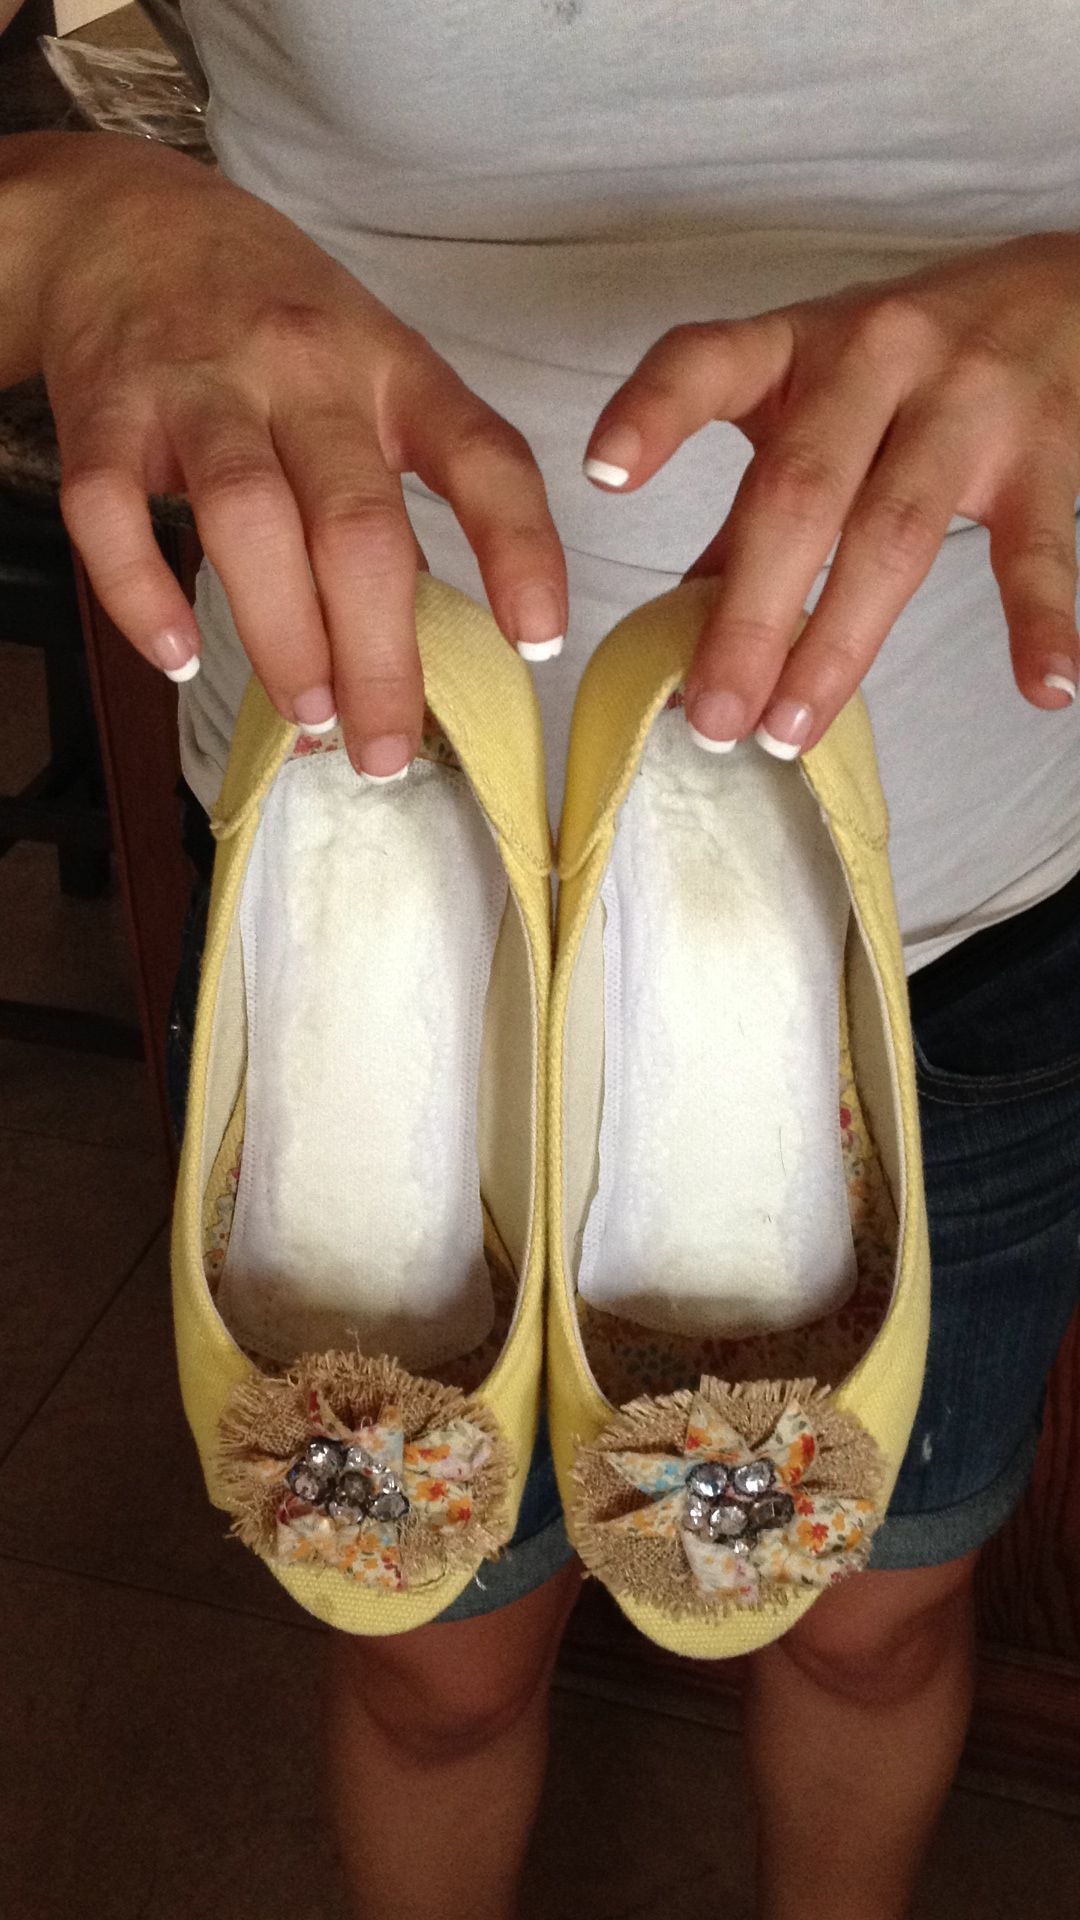 It might look gross, but putting fresh panty liners in shoes to absorb  sweat keeps